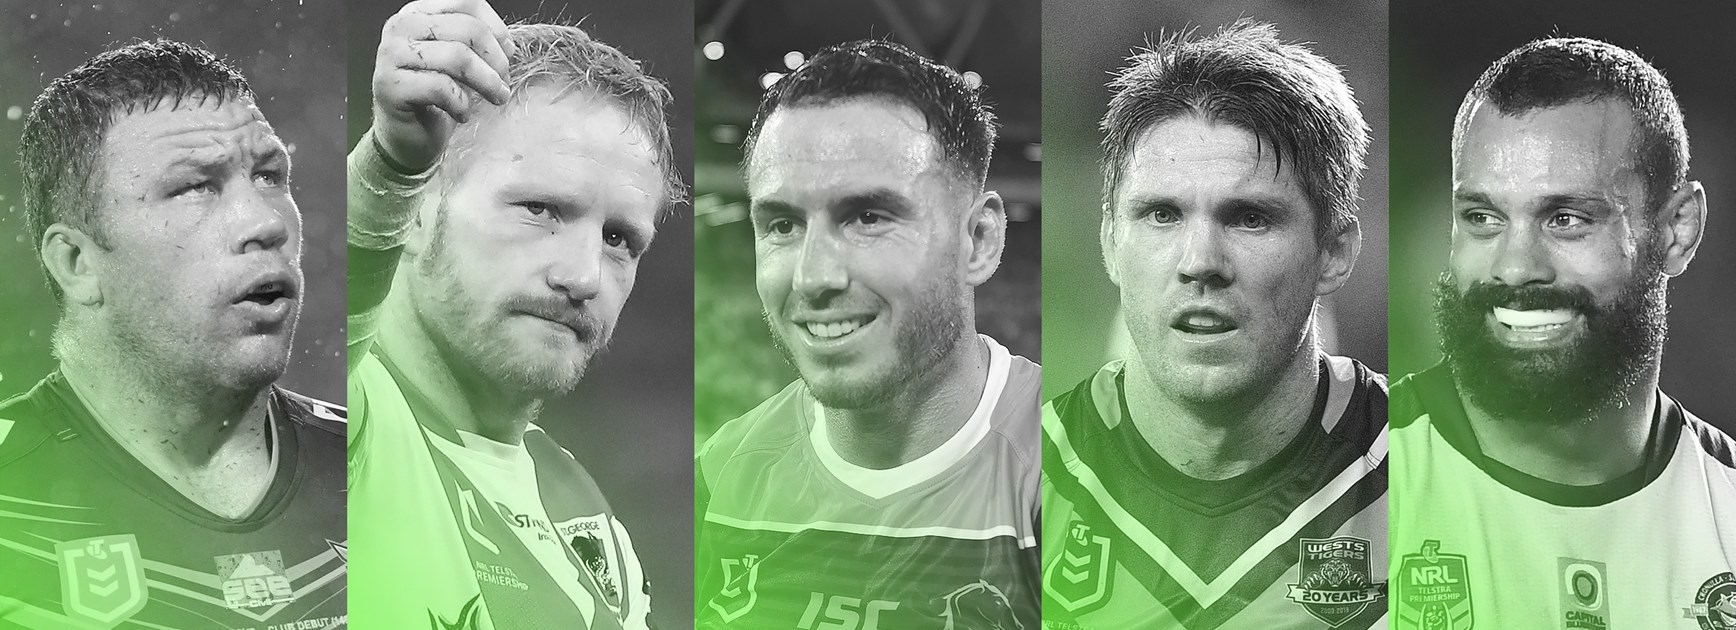 2020 retiring class: 5000 games of experience leaving NRL